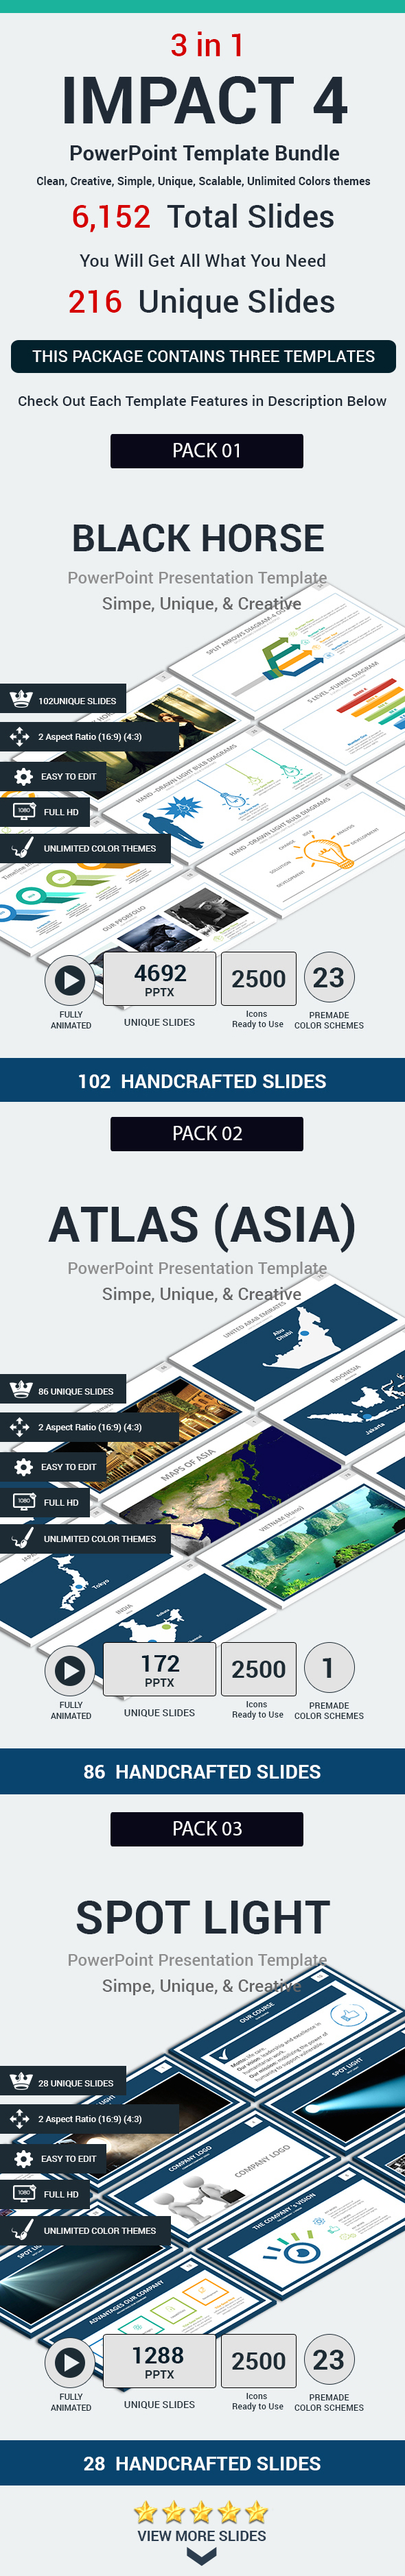 IMPACT 4 >3 in 1 PowerPoint Template Bundle (PowerPoint Templates)